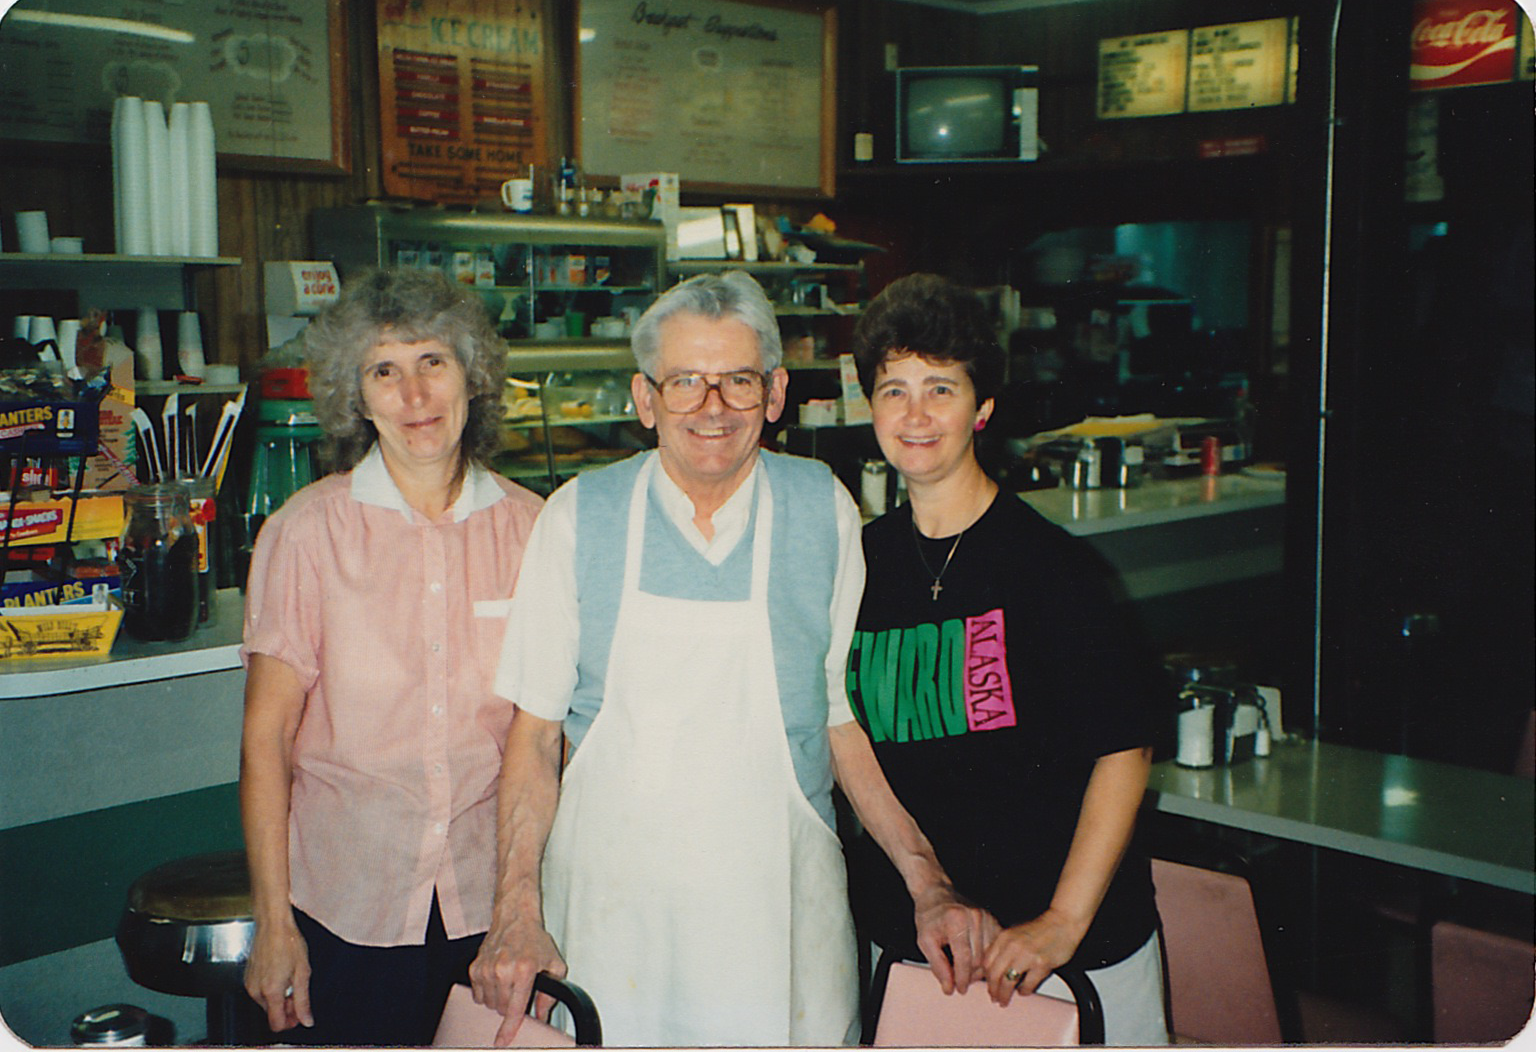 Bill Crowley  (center) , with wife Barbara  (left)  and Nancy Jacobus  (right), circa 1979